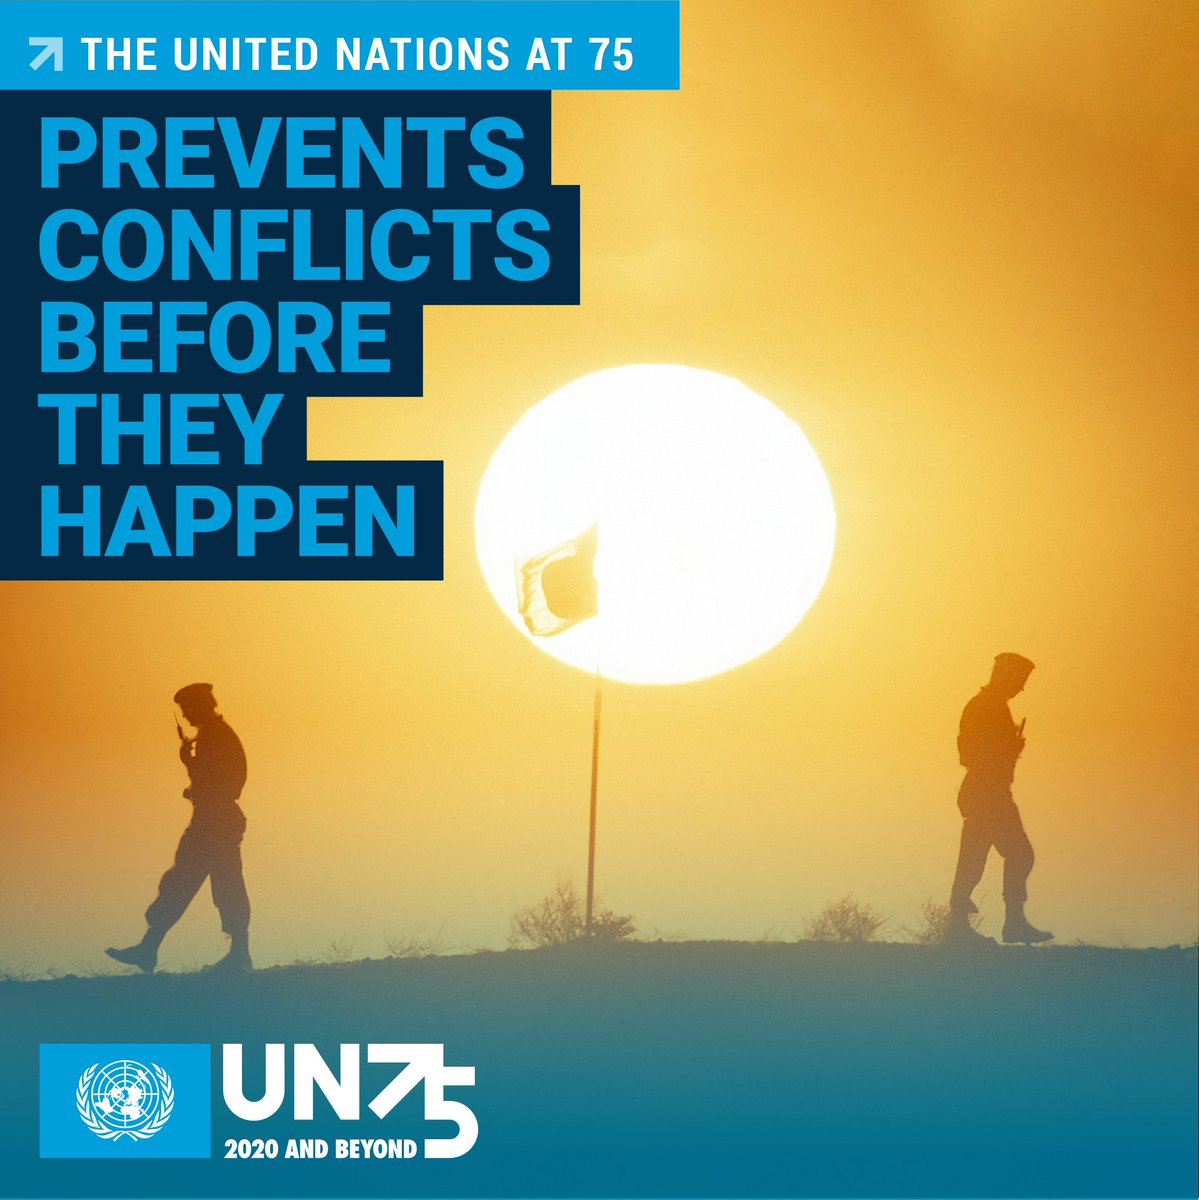 It may not always make the headlines -- but the UN works all over the world to prevent conflict and promote peace and stability.  As we mark our 75th anniversary, see how else the UN makes a difference in the lives of everyone, everywhere:   #UN75